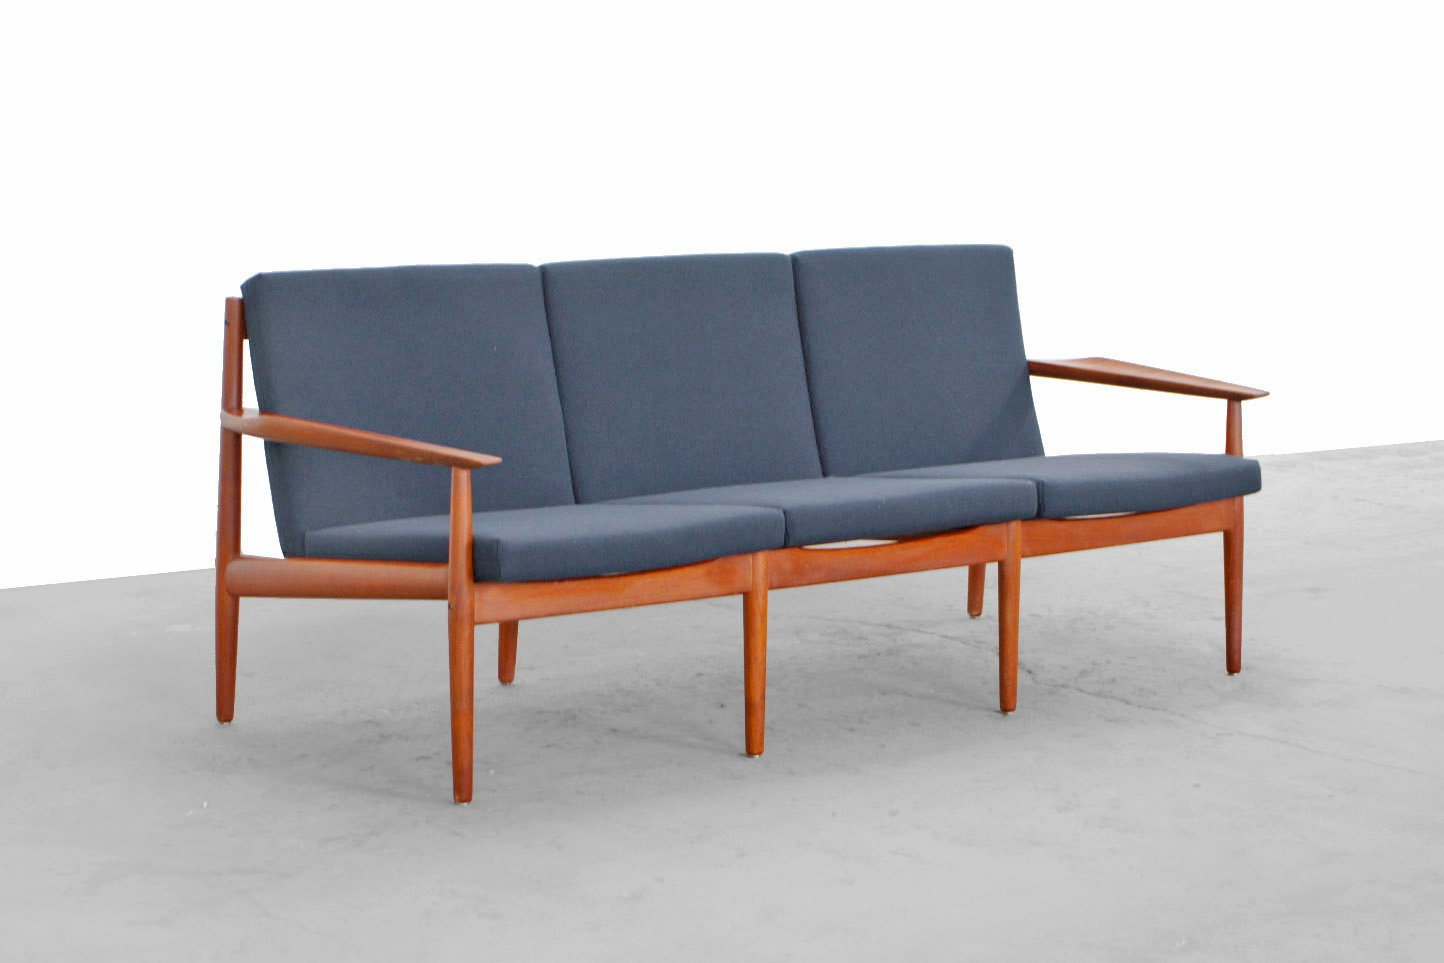 vintage mid century teak sofa by arne vodder for glostrup 1954 for sale at pamono. Black Bedroom Furniture Sets. Home Design Ideas